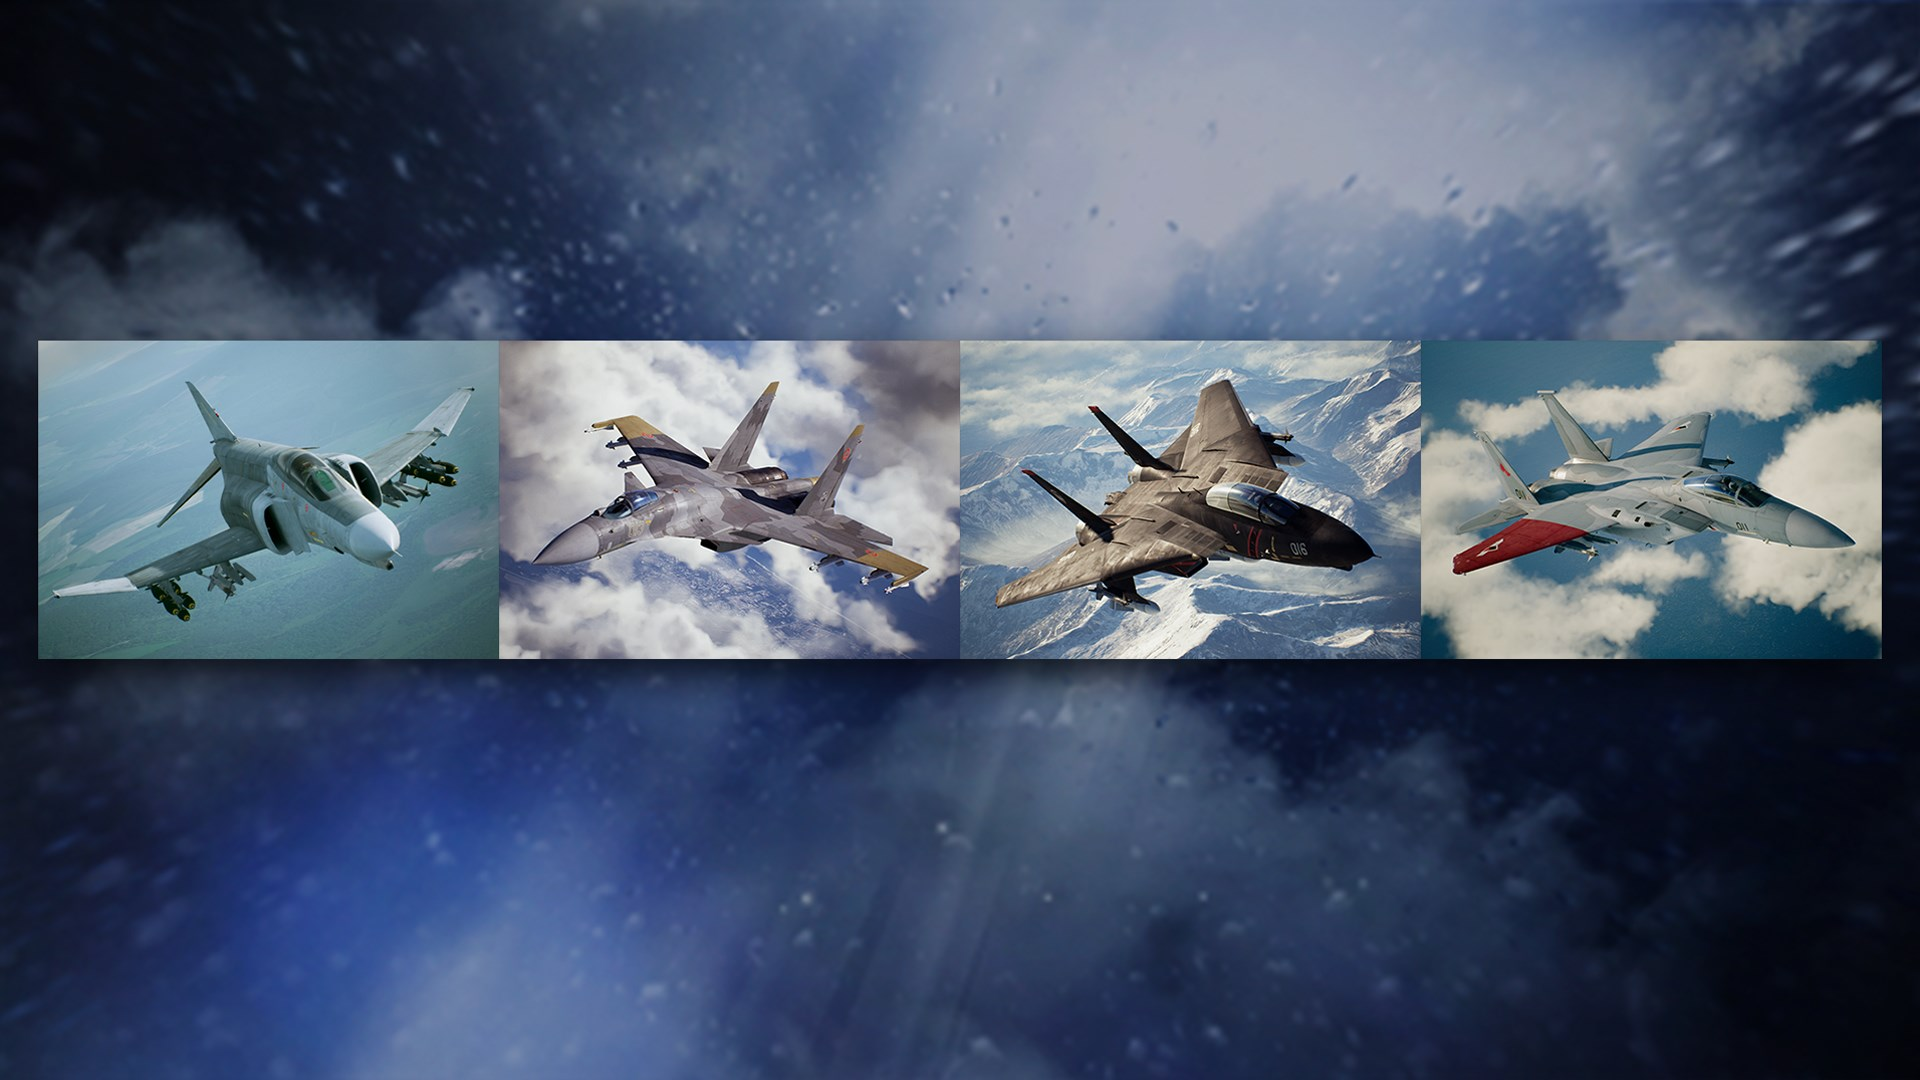 Buy Ace Combat 7 Skies Unknown F 4e Phantom Ii 3 Skins Microsoft Store En Ca